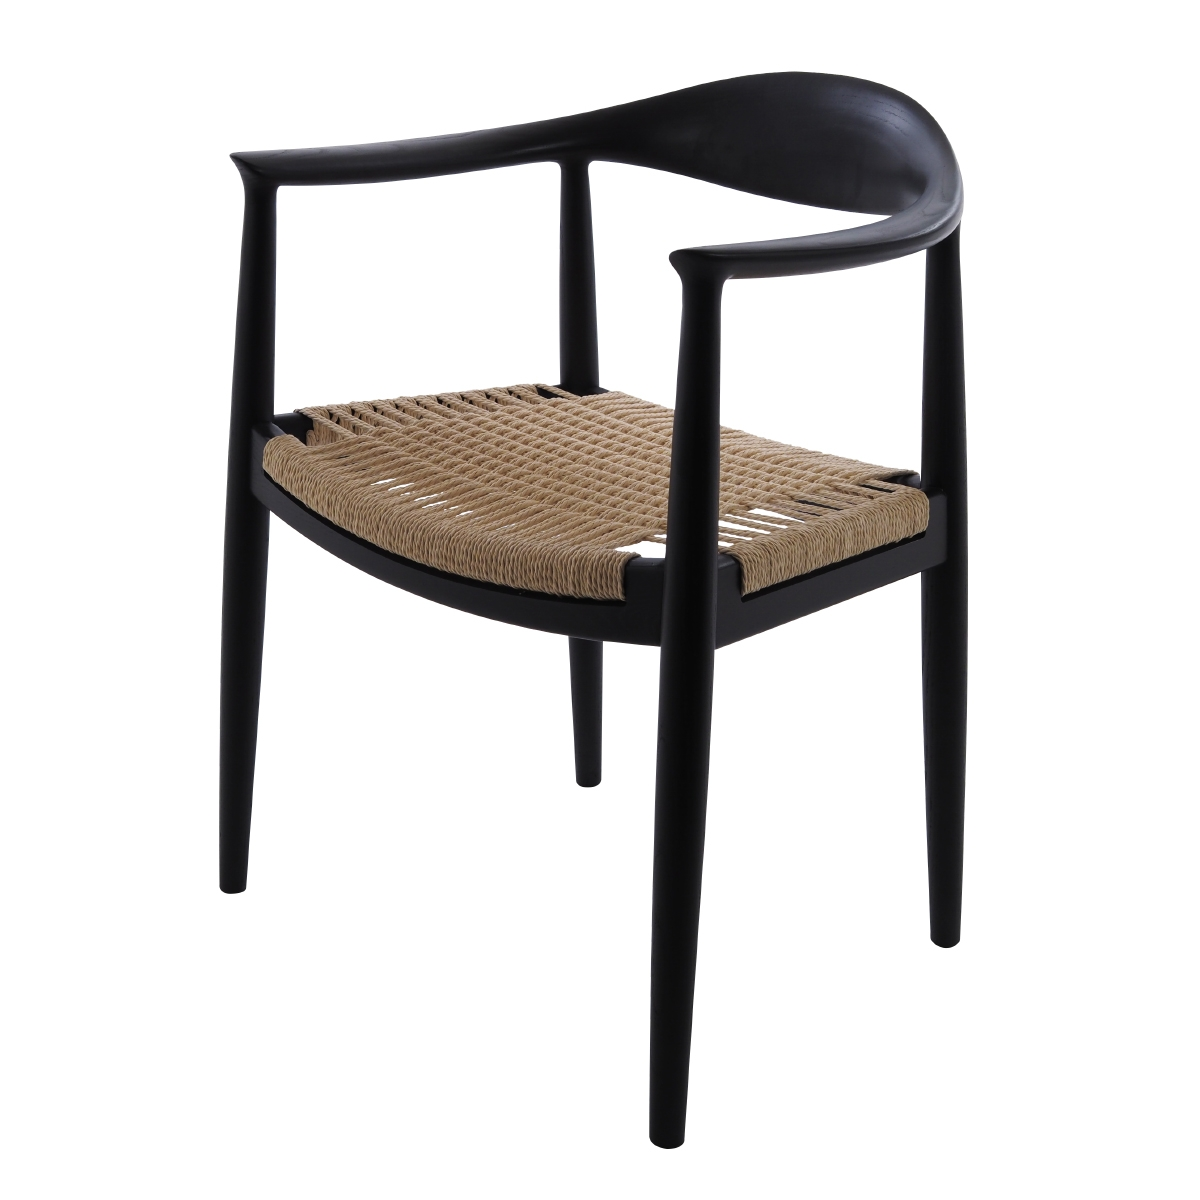 sc 1 st  Dominidesign! & Wegnerdining chair kennedy chair black